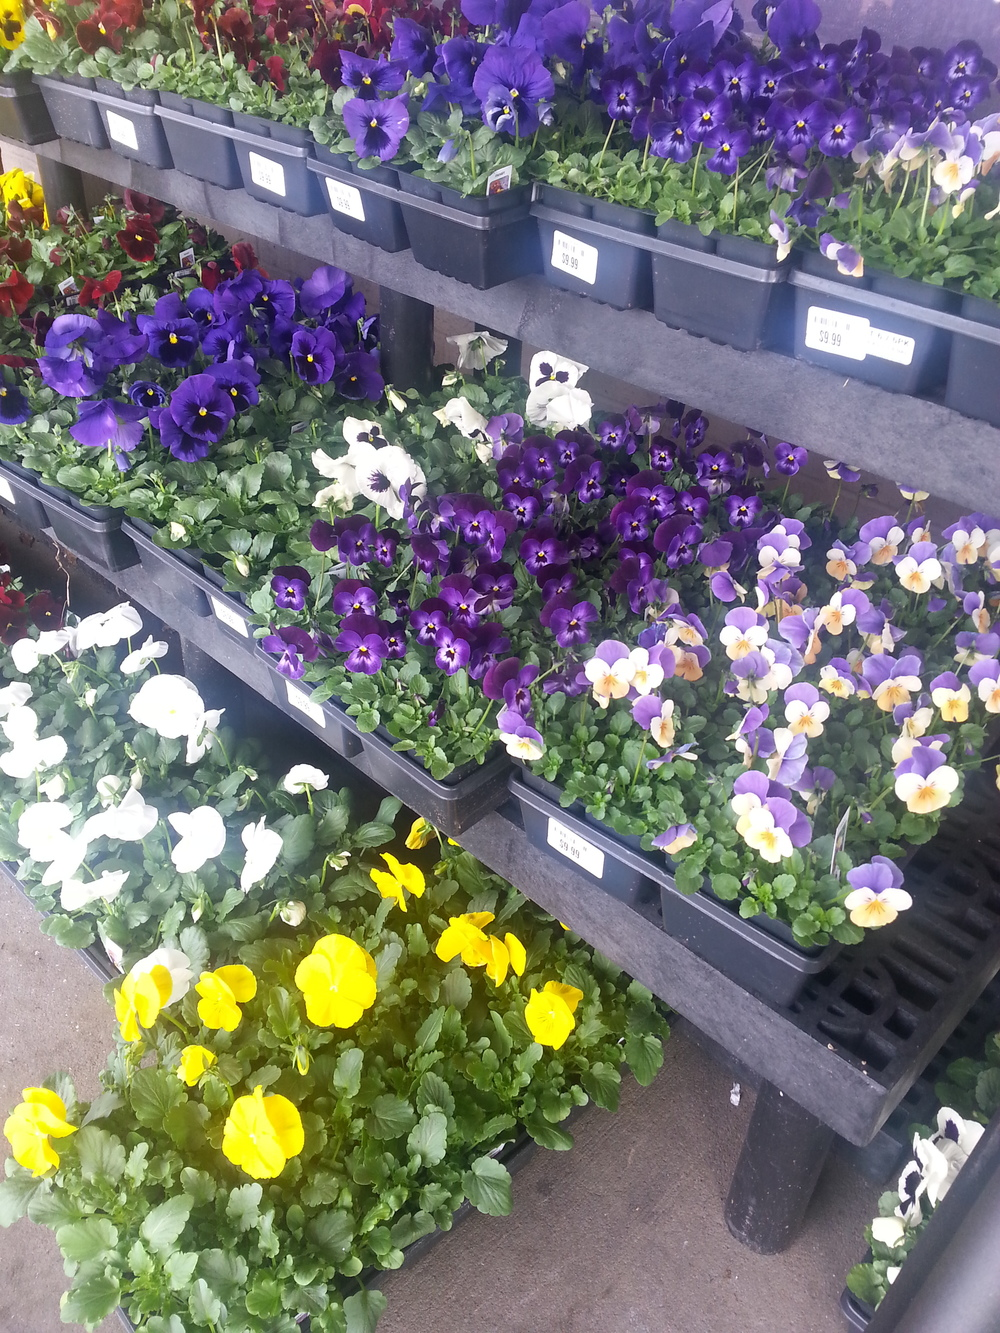 Flats of pansies are popping up everywhere.